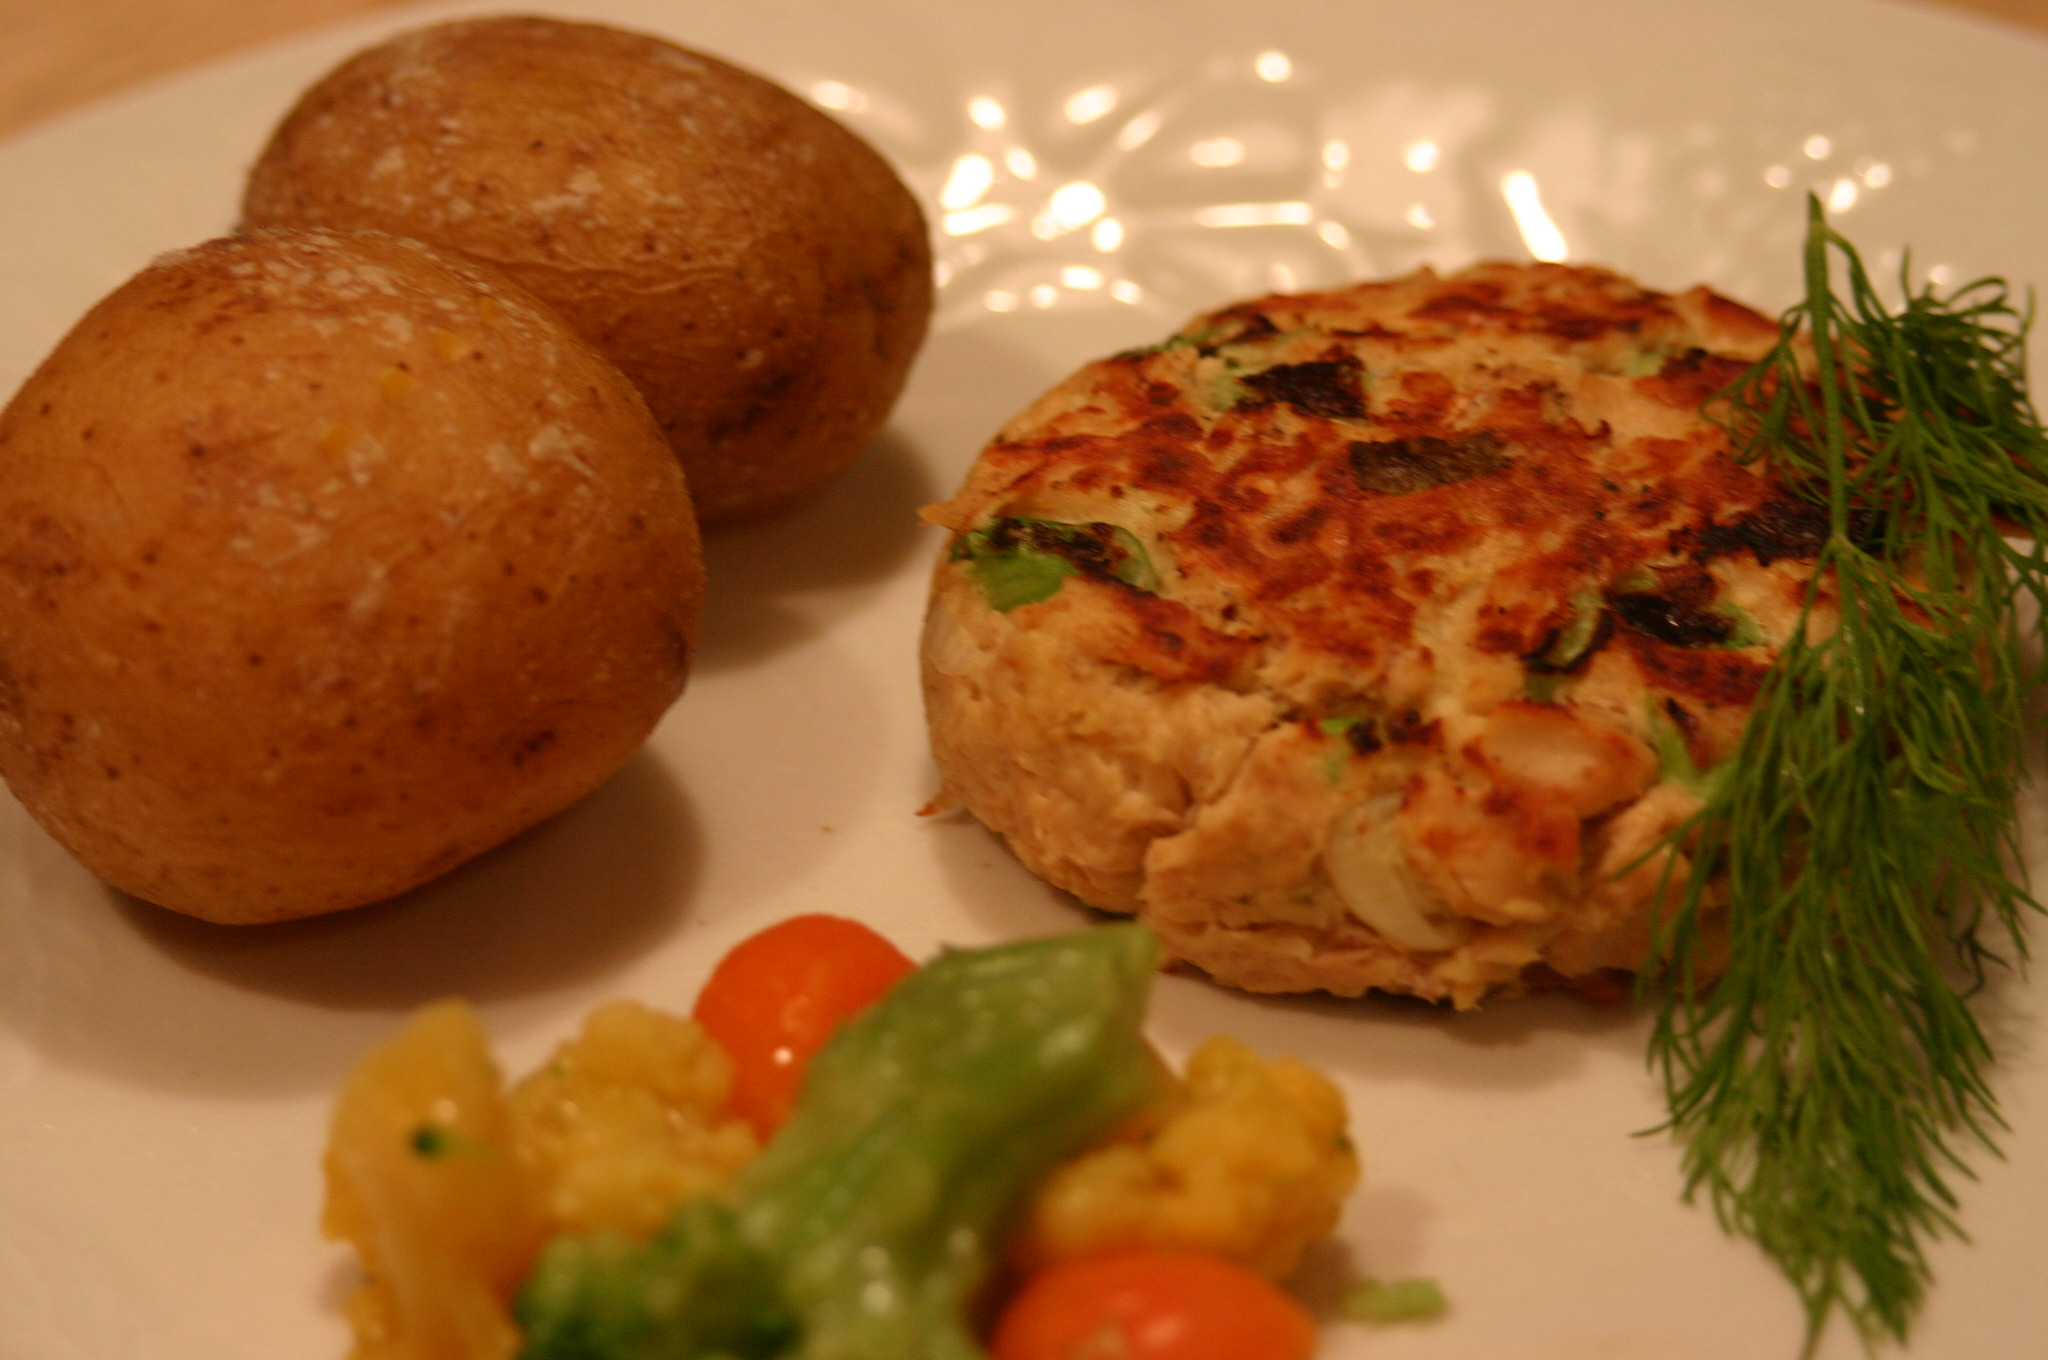 These salmon patties are fantastic served with dill tartar sauce.